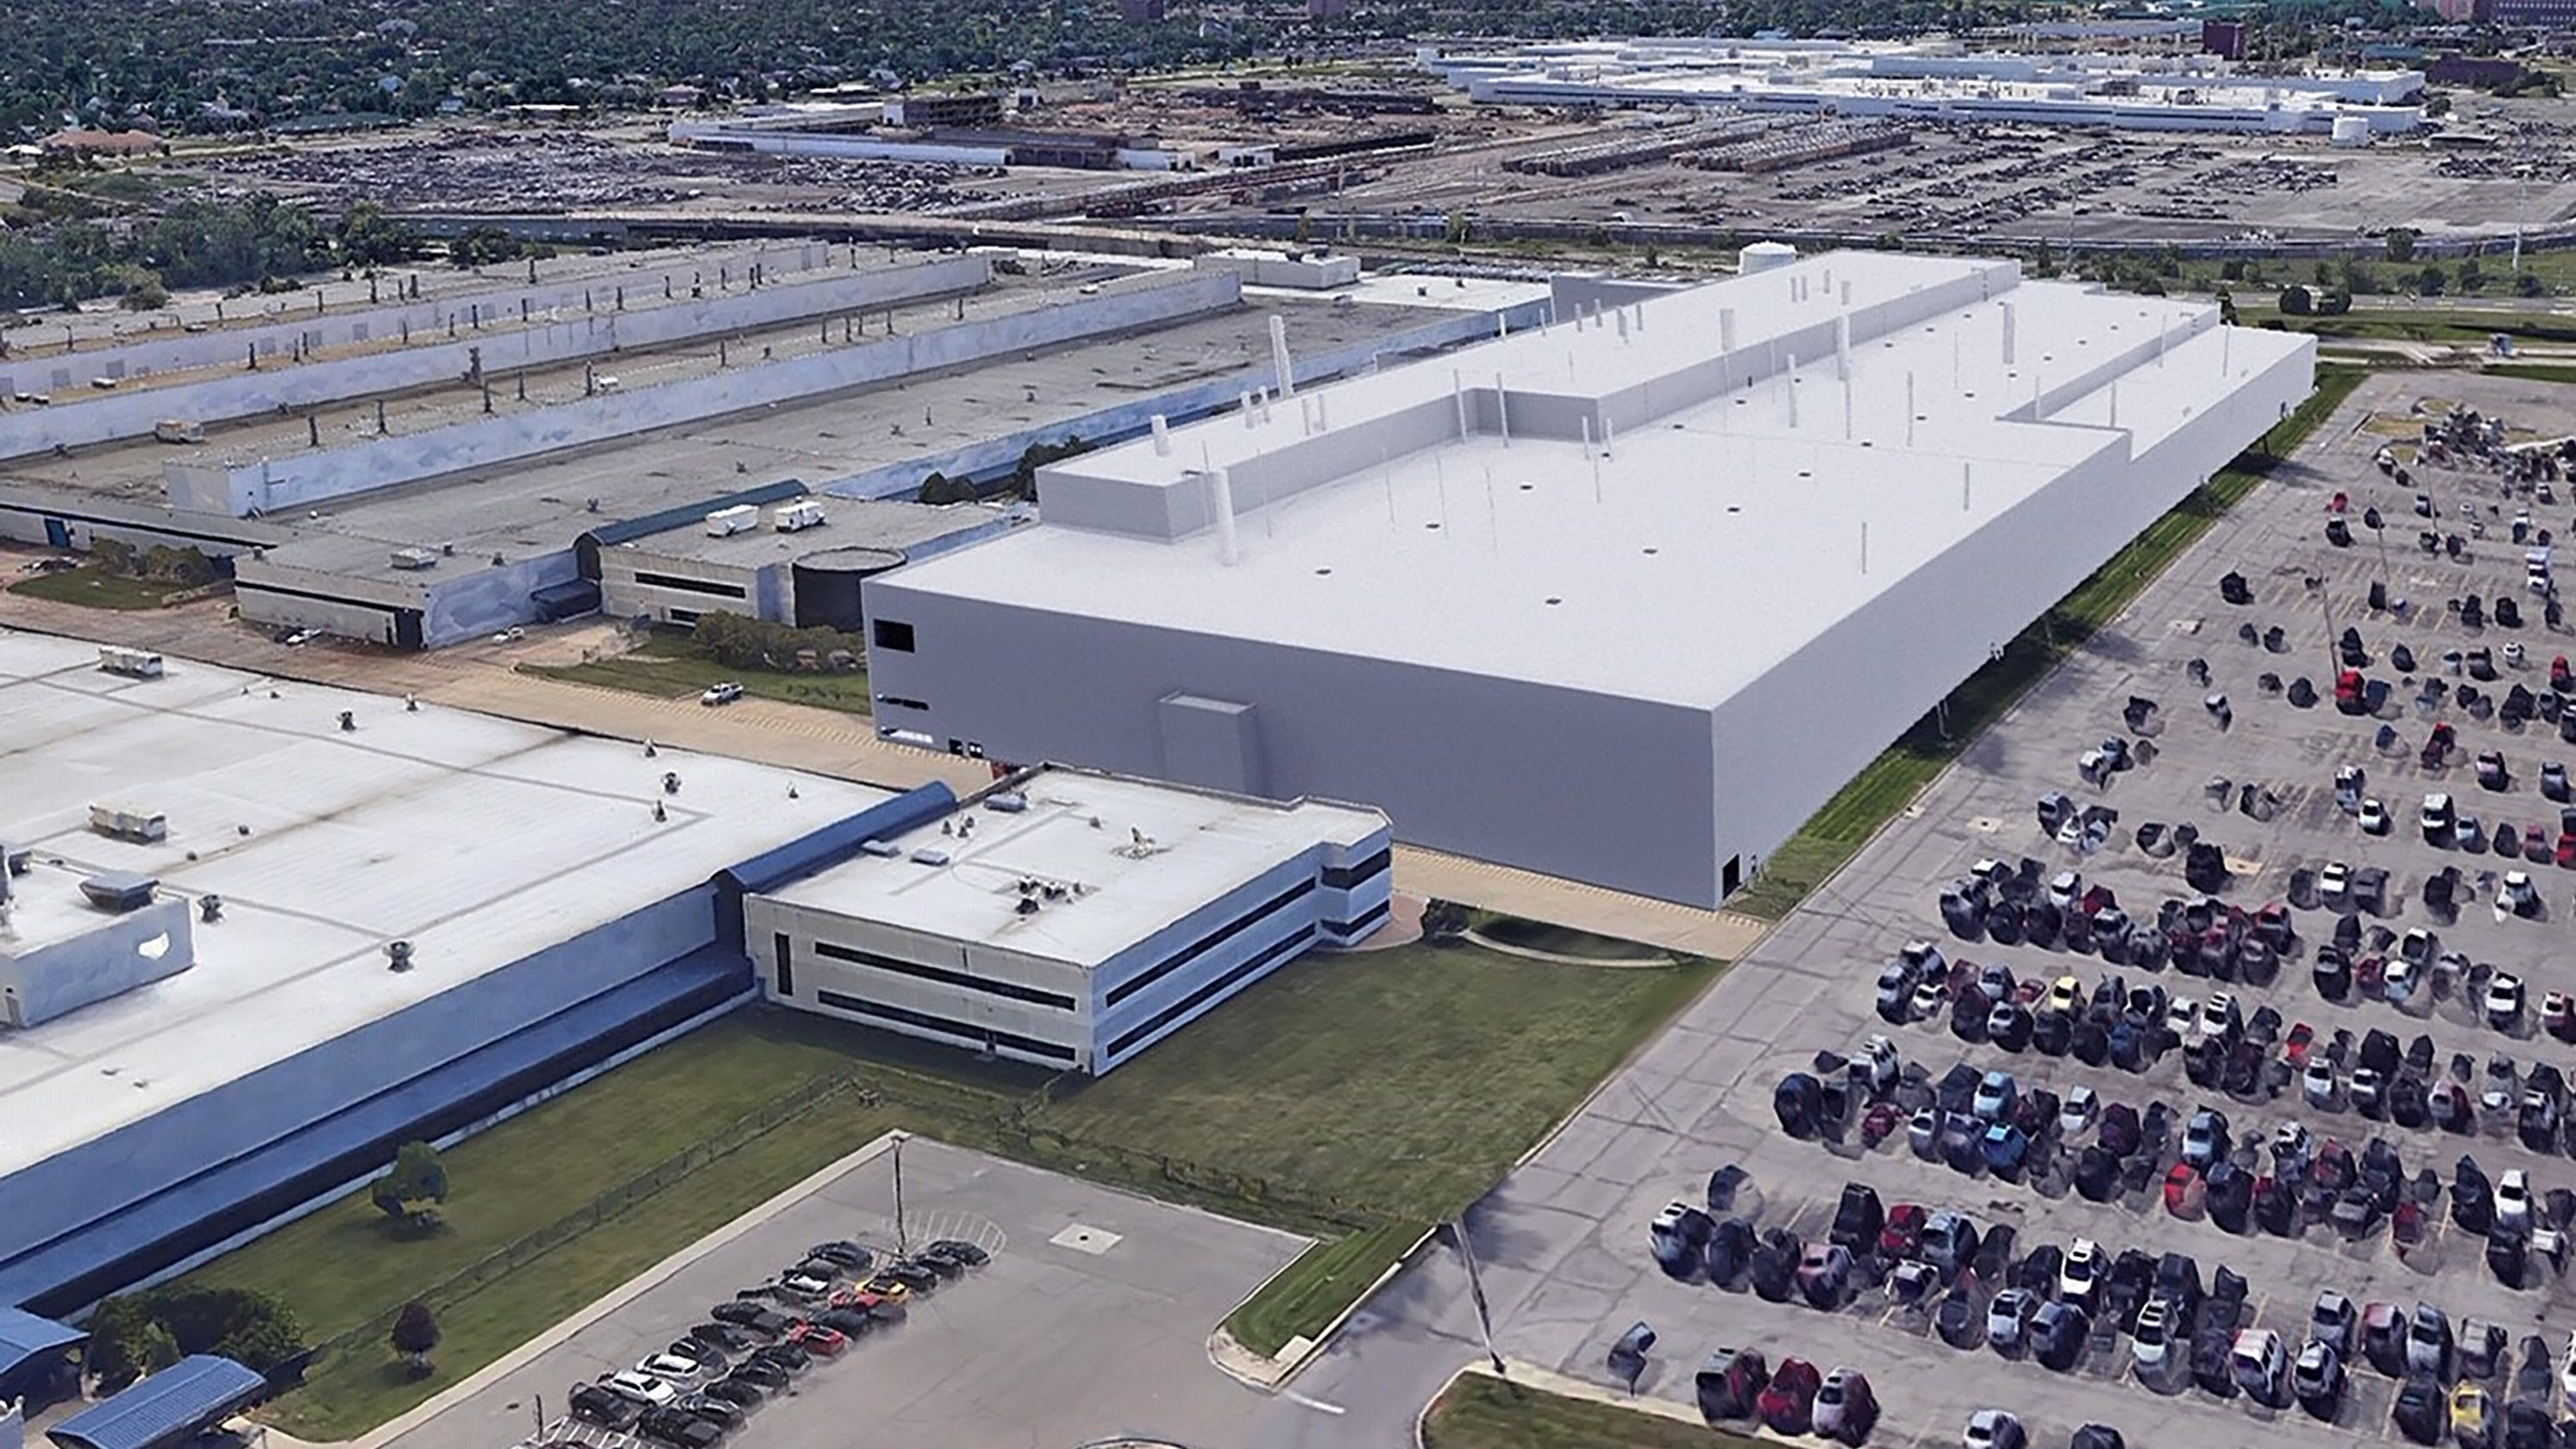 Michigan OKs big tax incentives for FCA's Jeep plant deal in Detroit